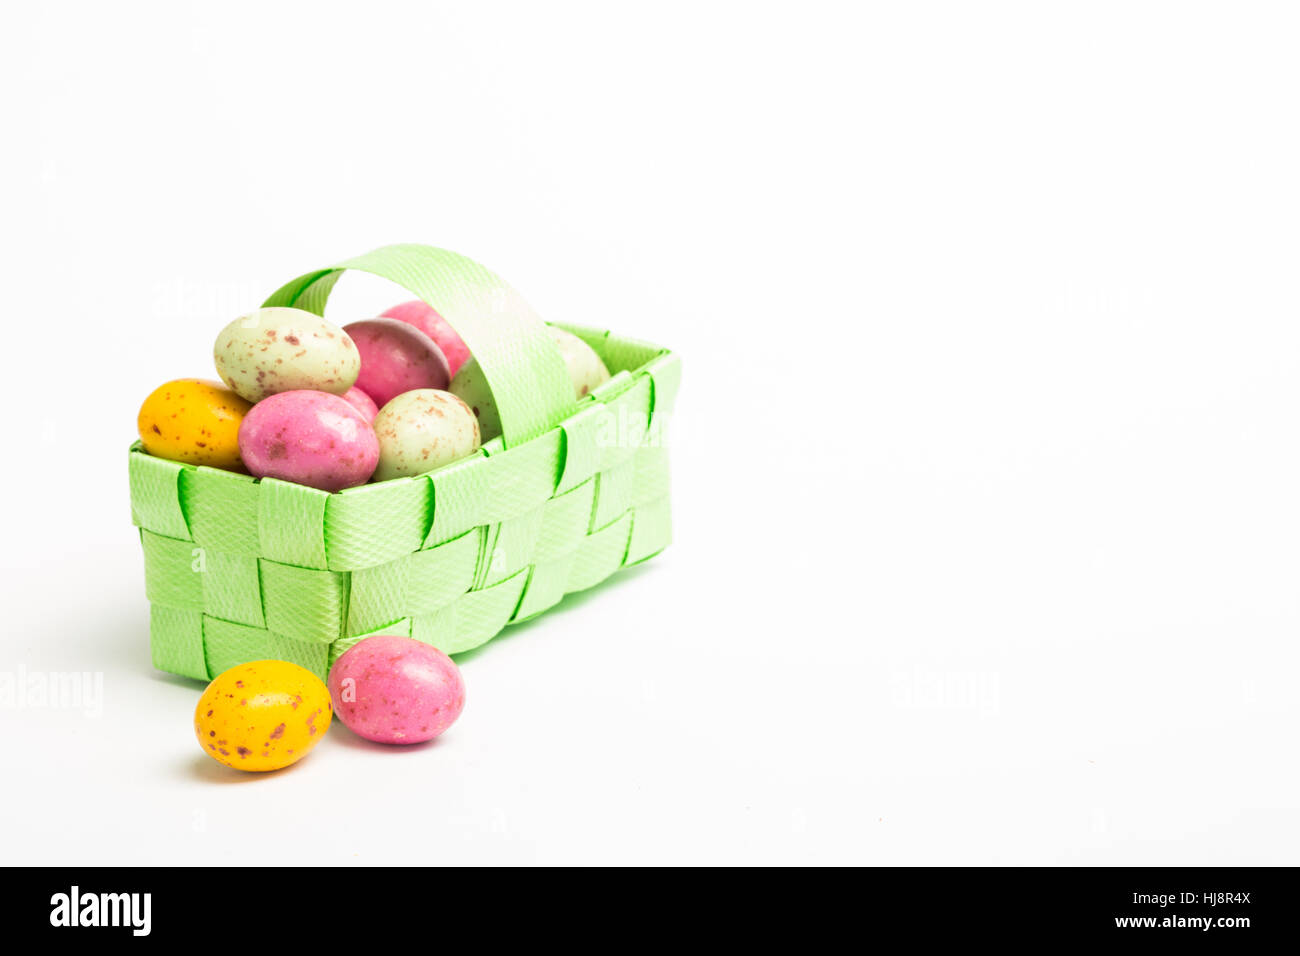 Colourful easter eggs in a green wicker basket on white background Stock Photo